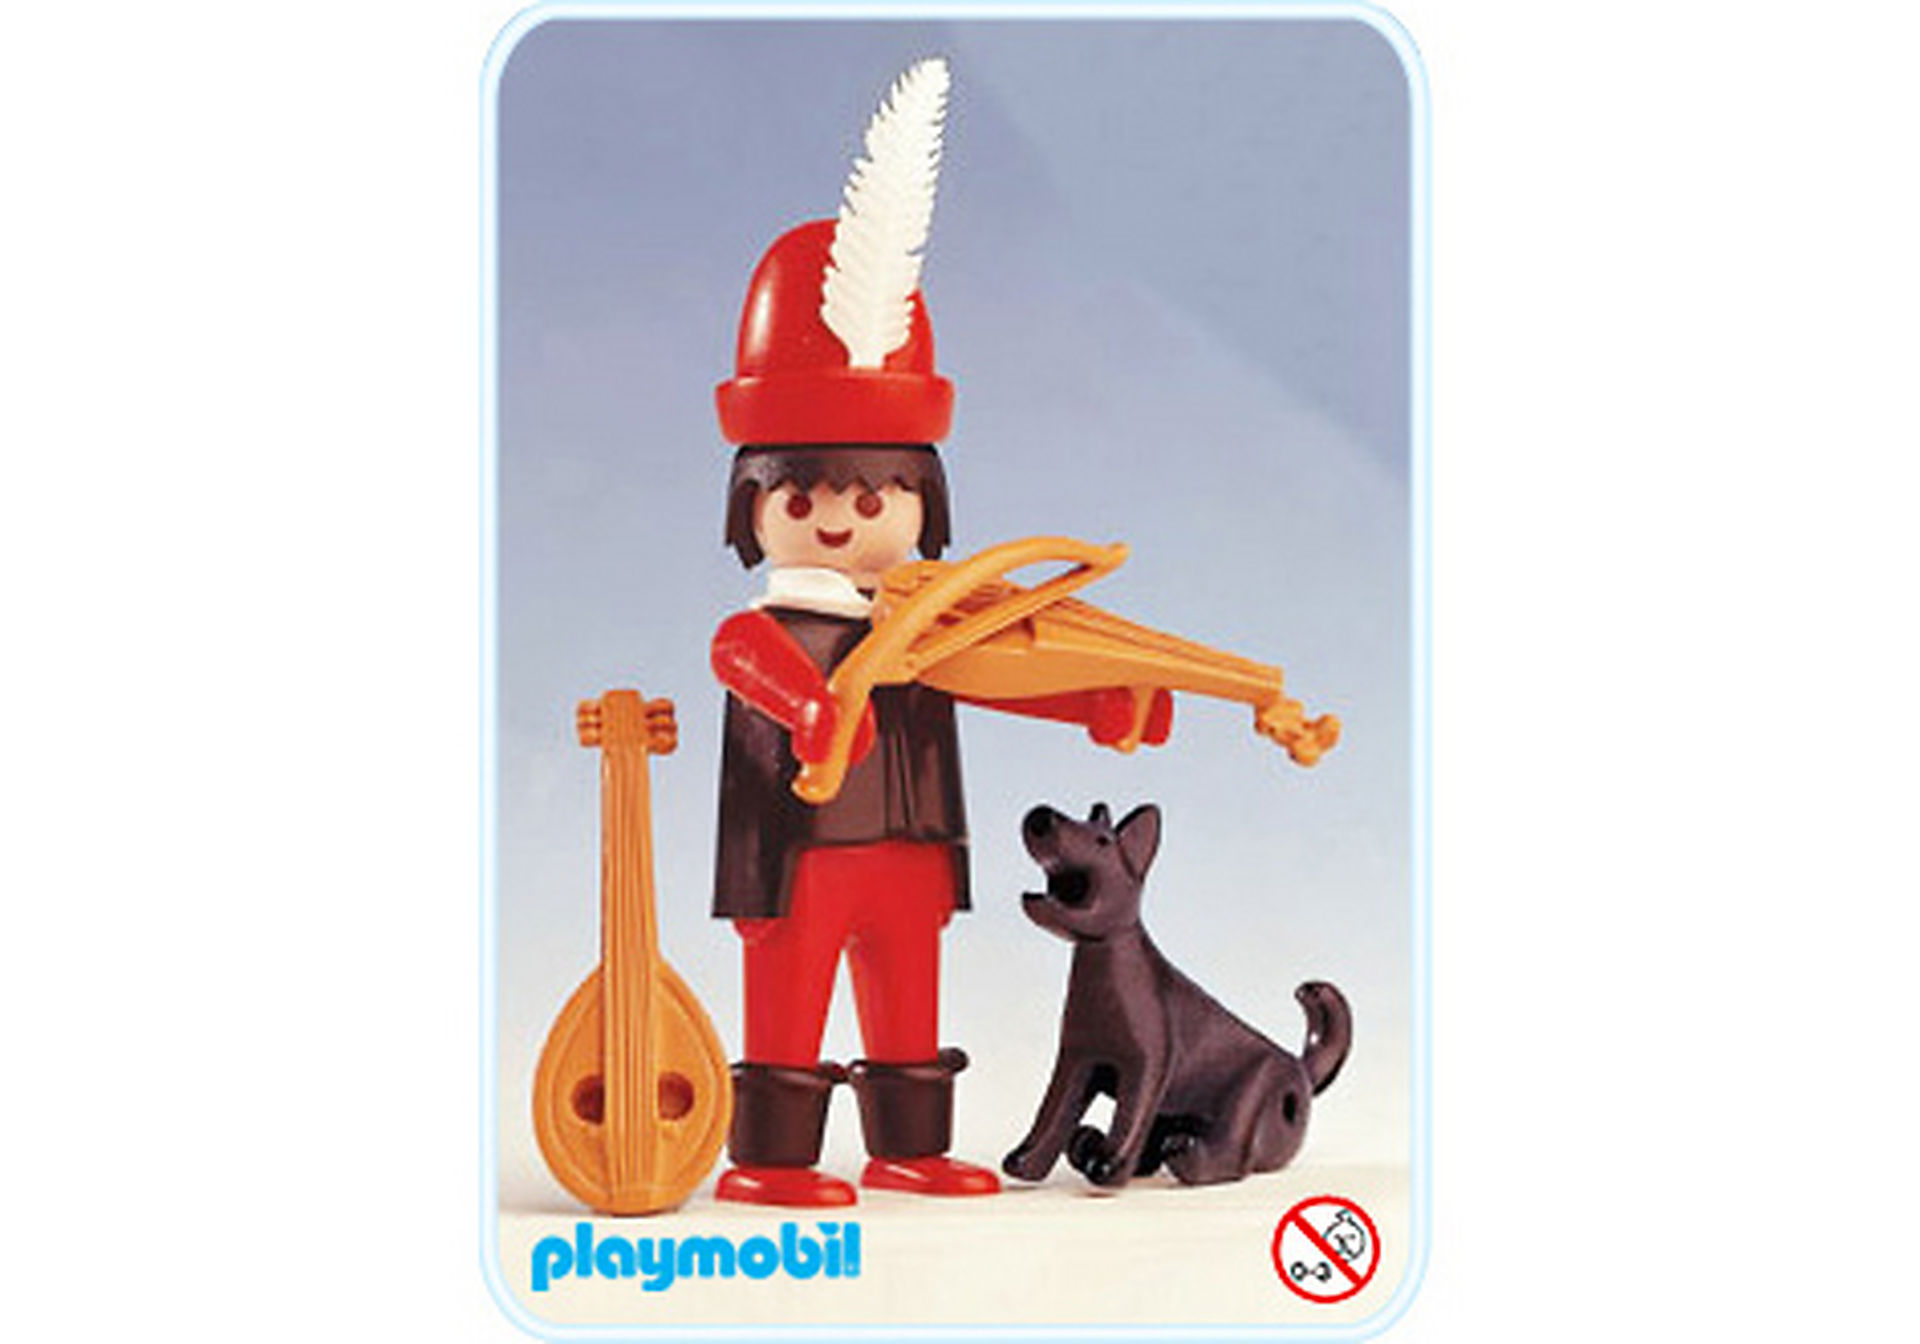 http://media.playmobil.com/i/playmobil/3377-A_product_detail/Spielmann/Instrument